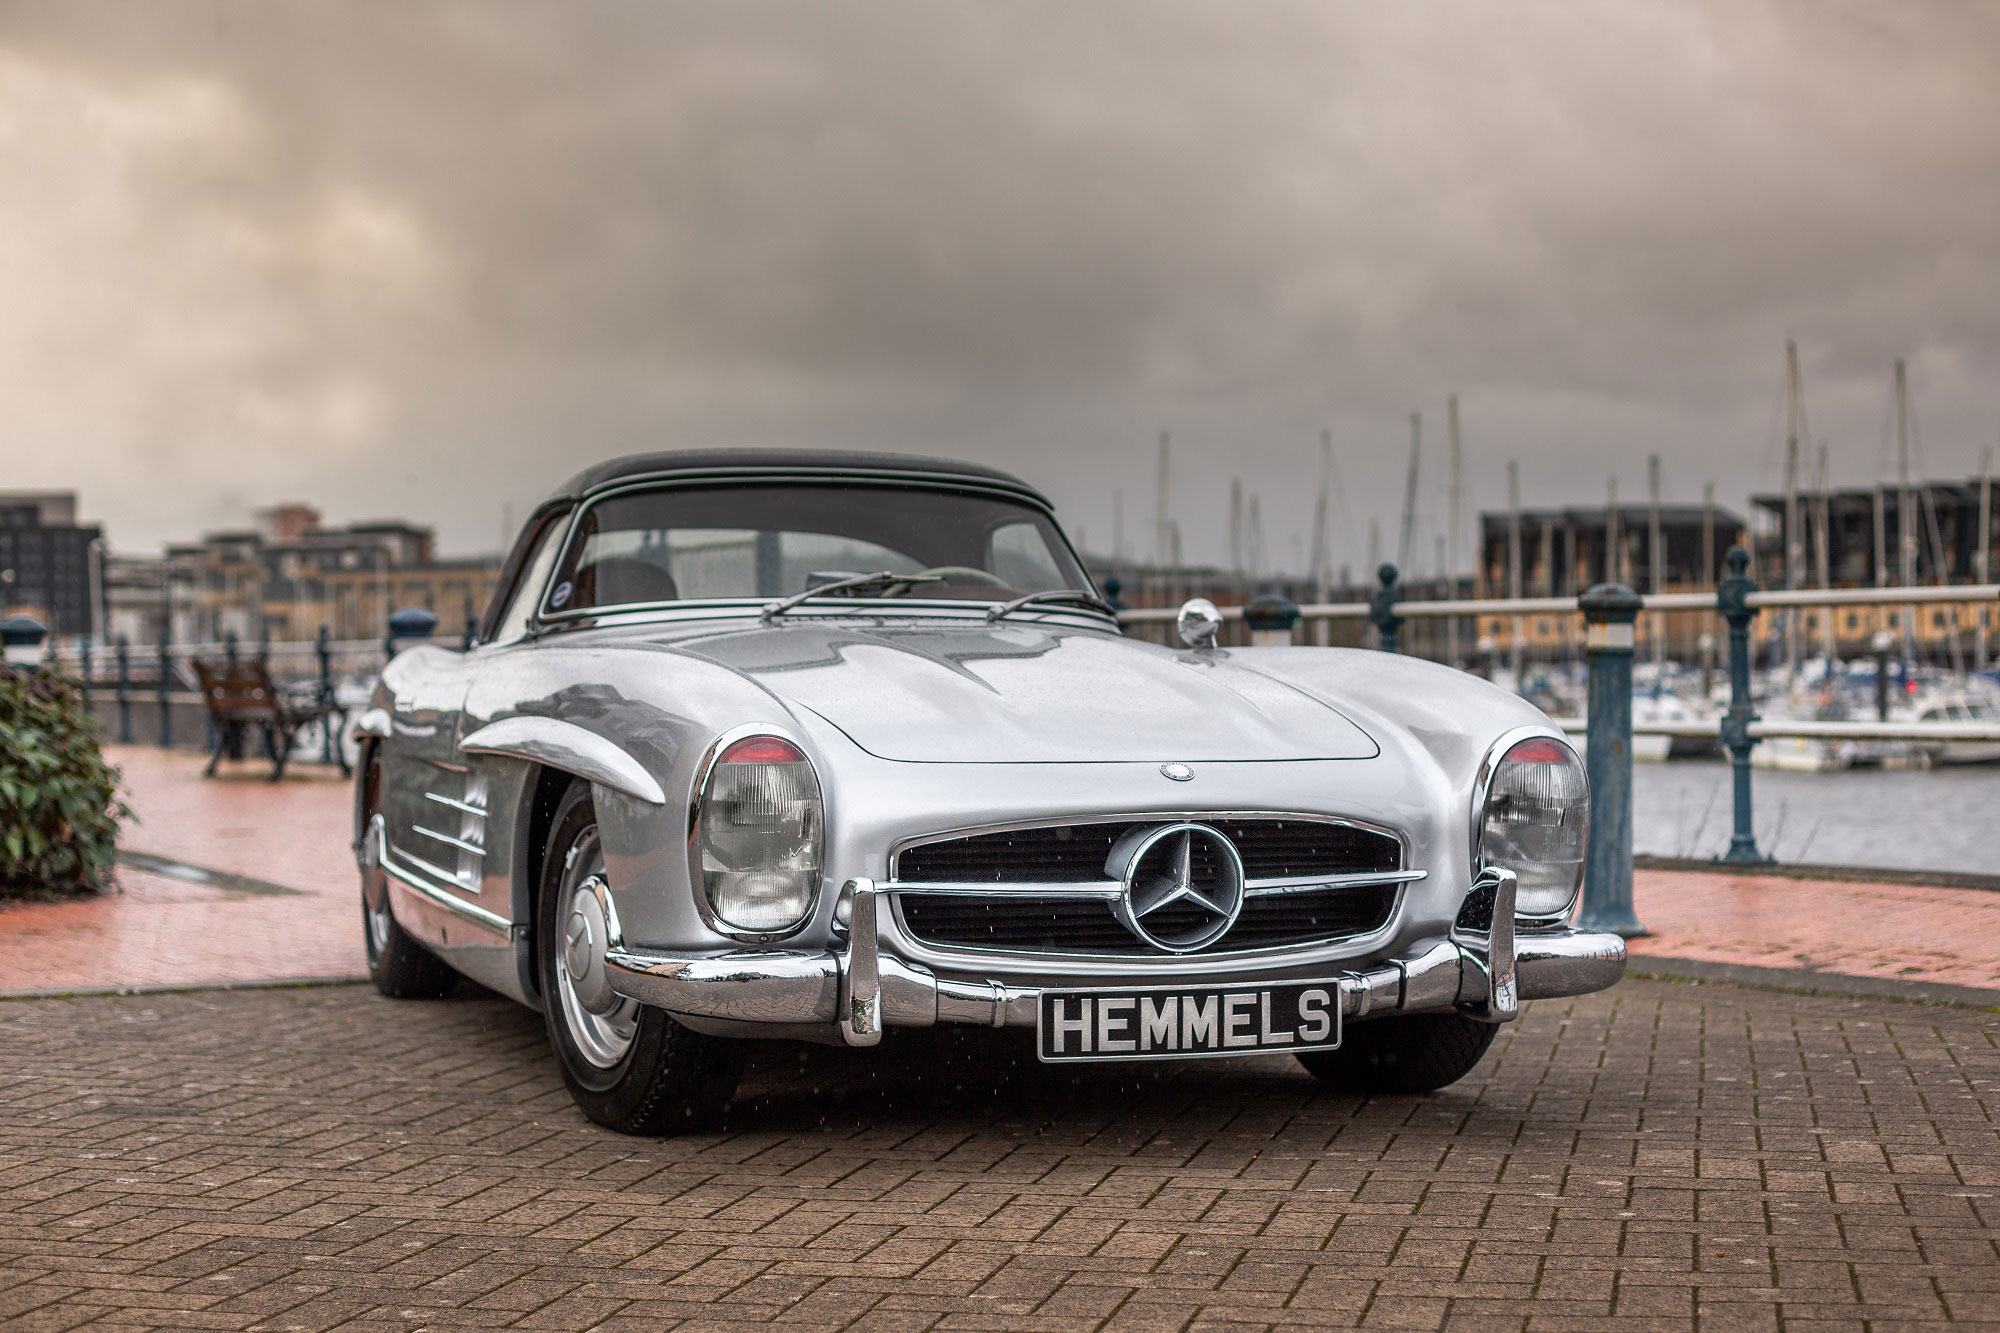 Classic Mercedes-Benz W198 300SL Roadster by marina in rain silver with red interior and black hardtop